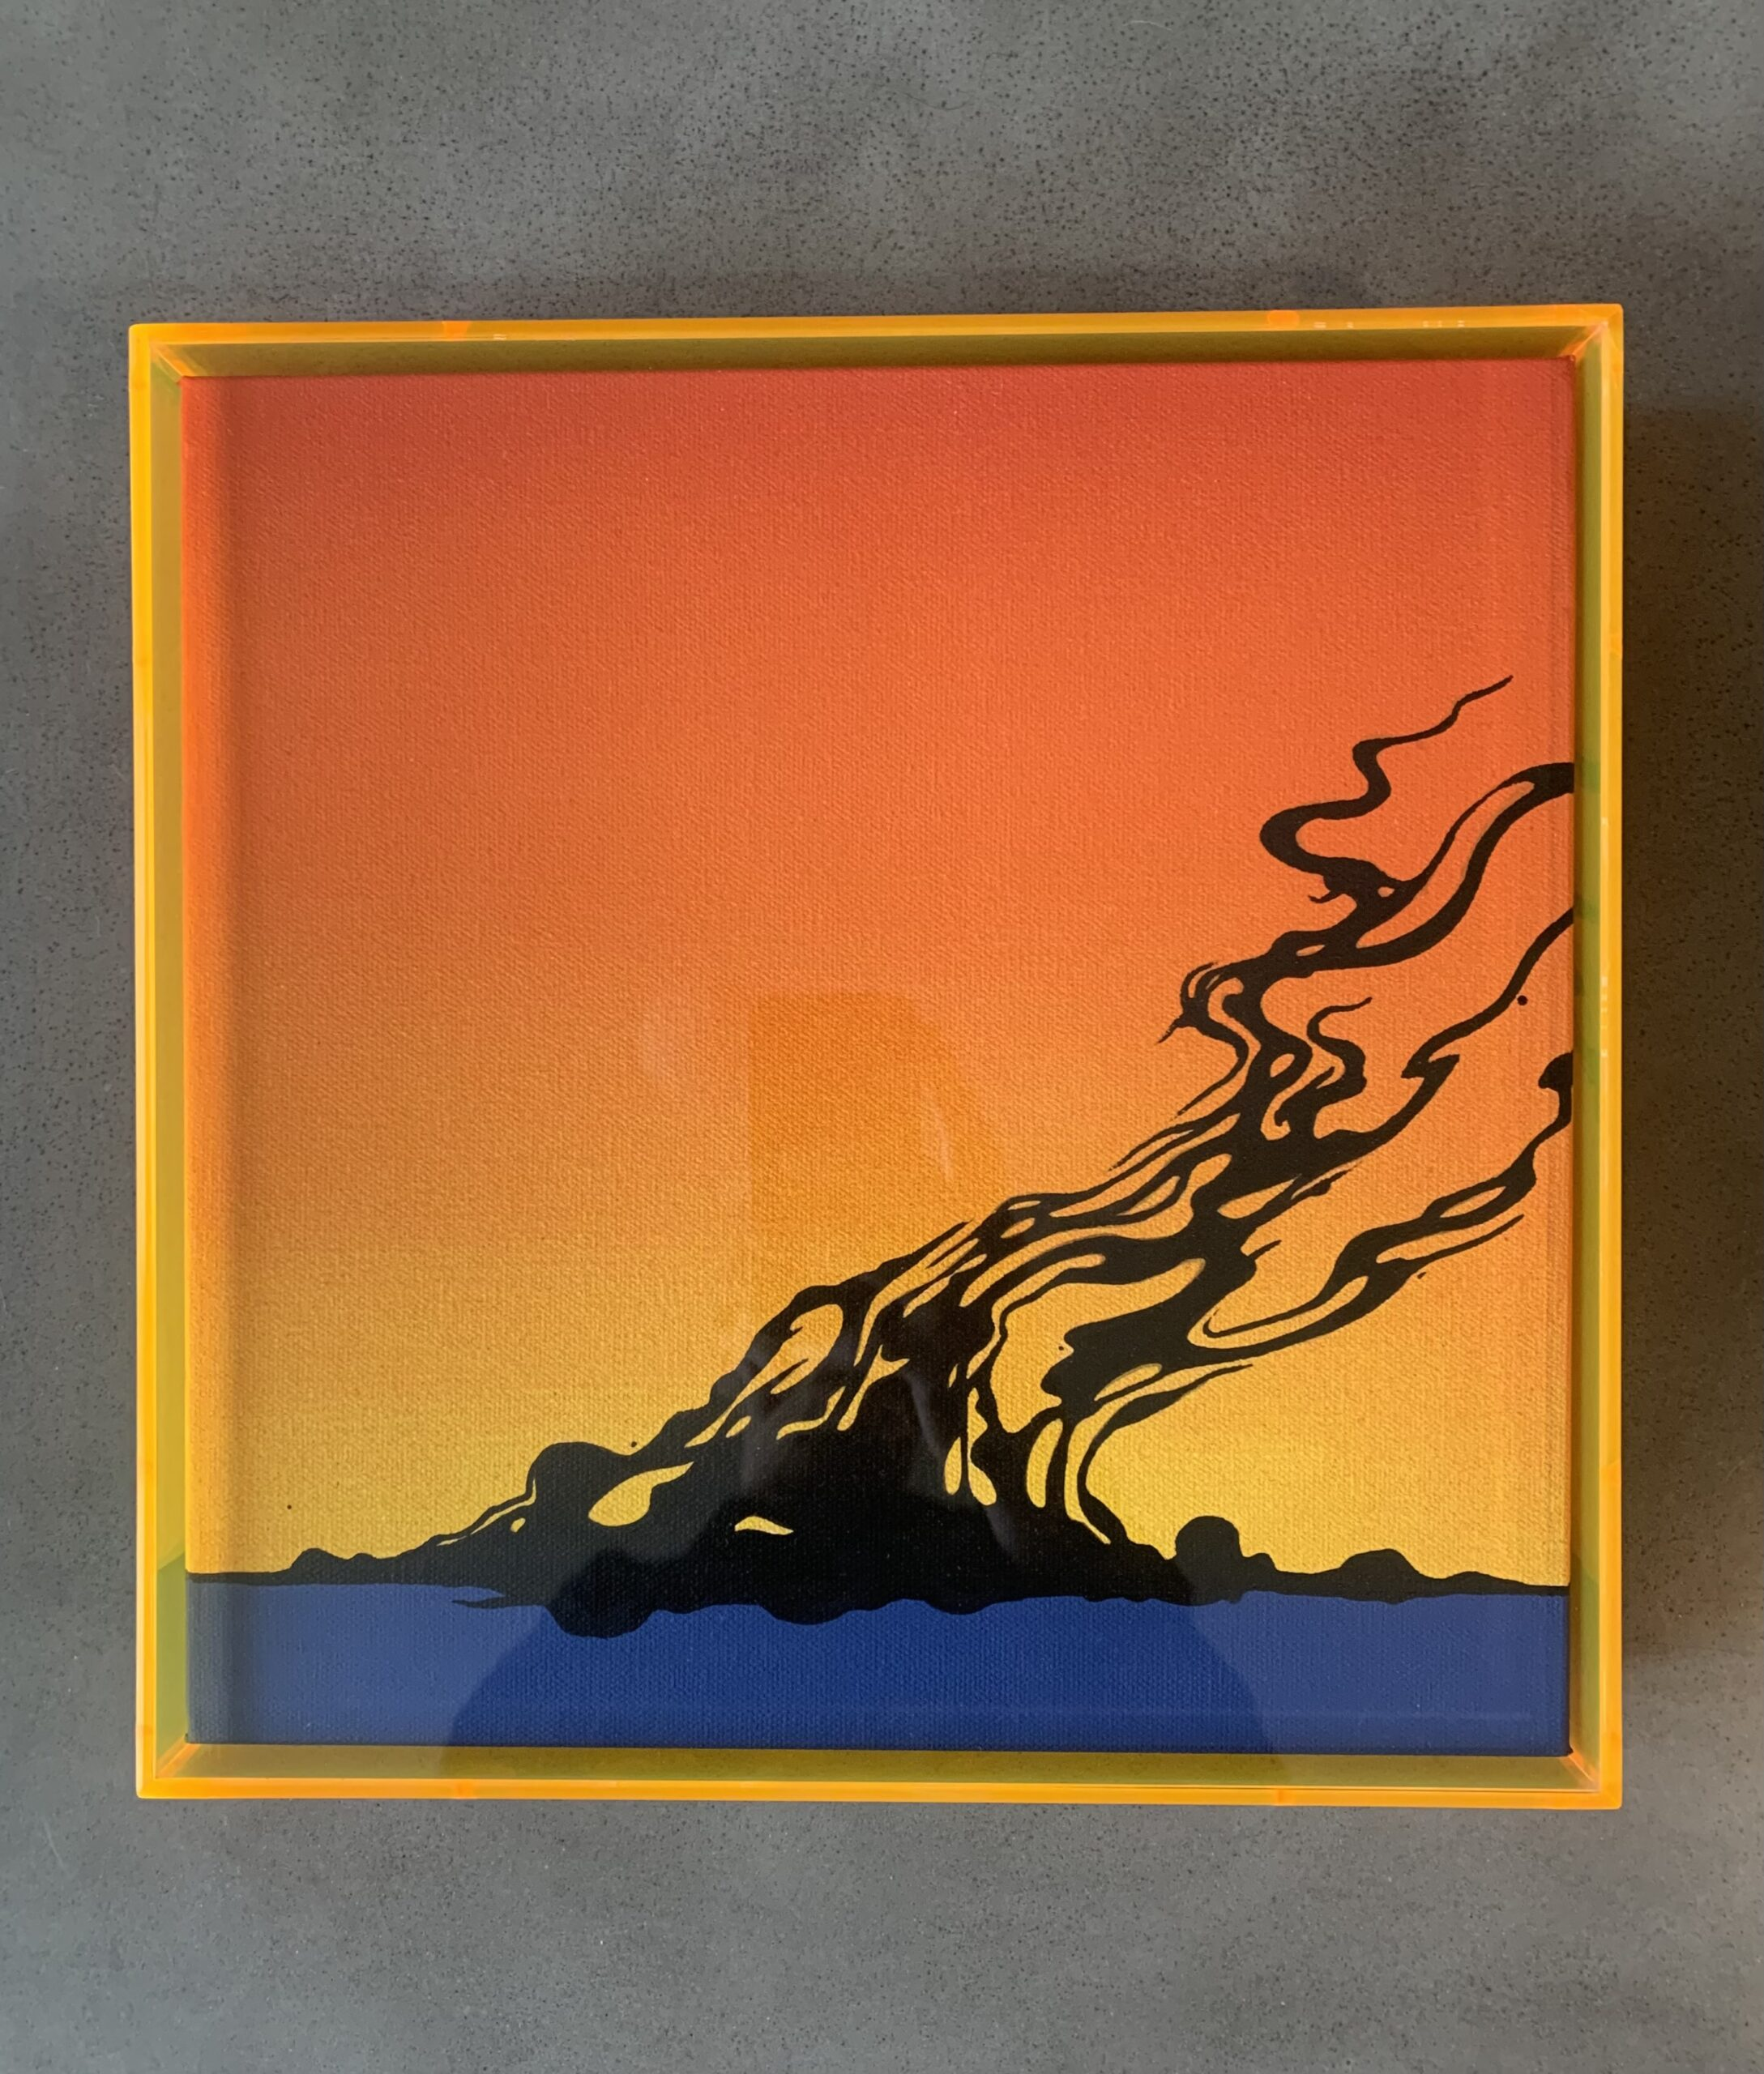 'Day After', 12x12' Gallery Wrapped Canvas inside a Orange Acrylic Case.